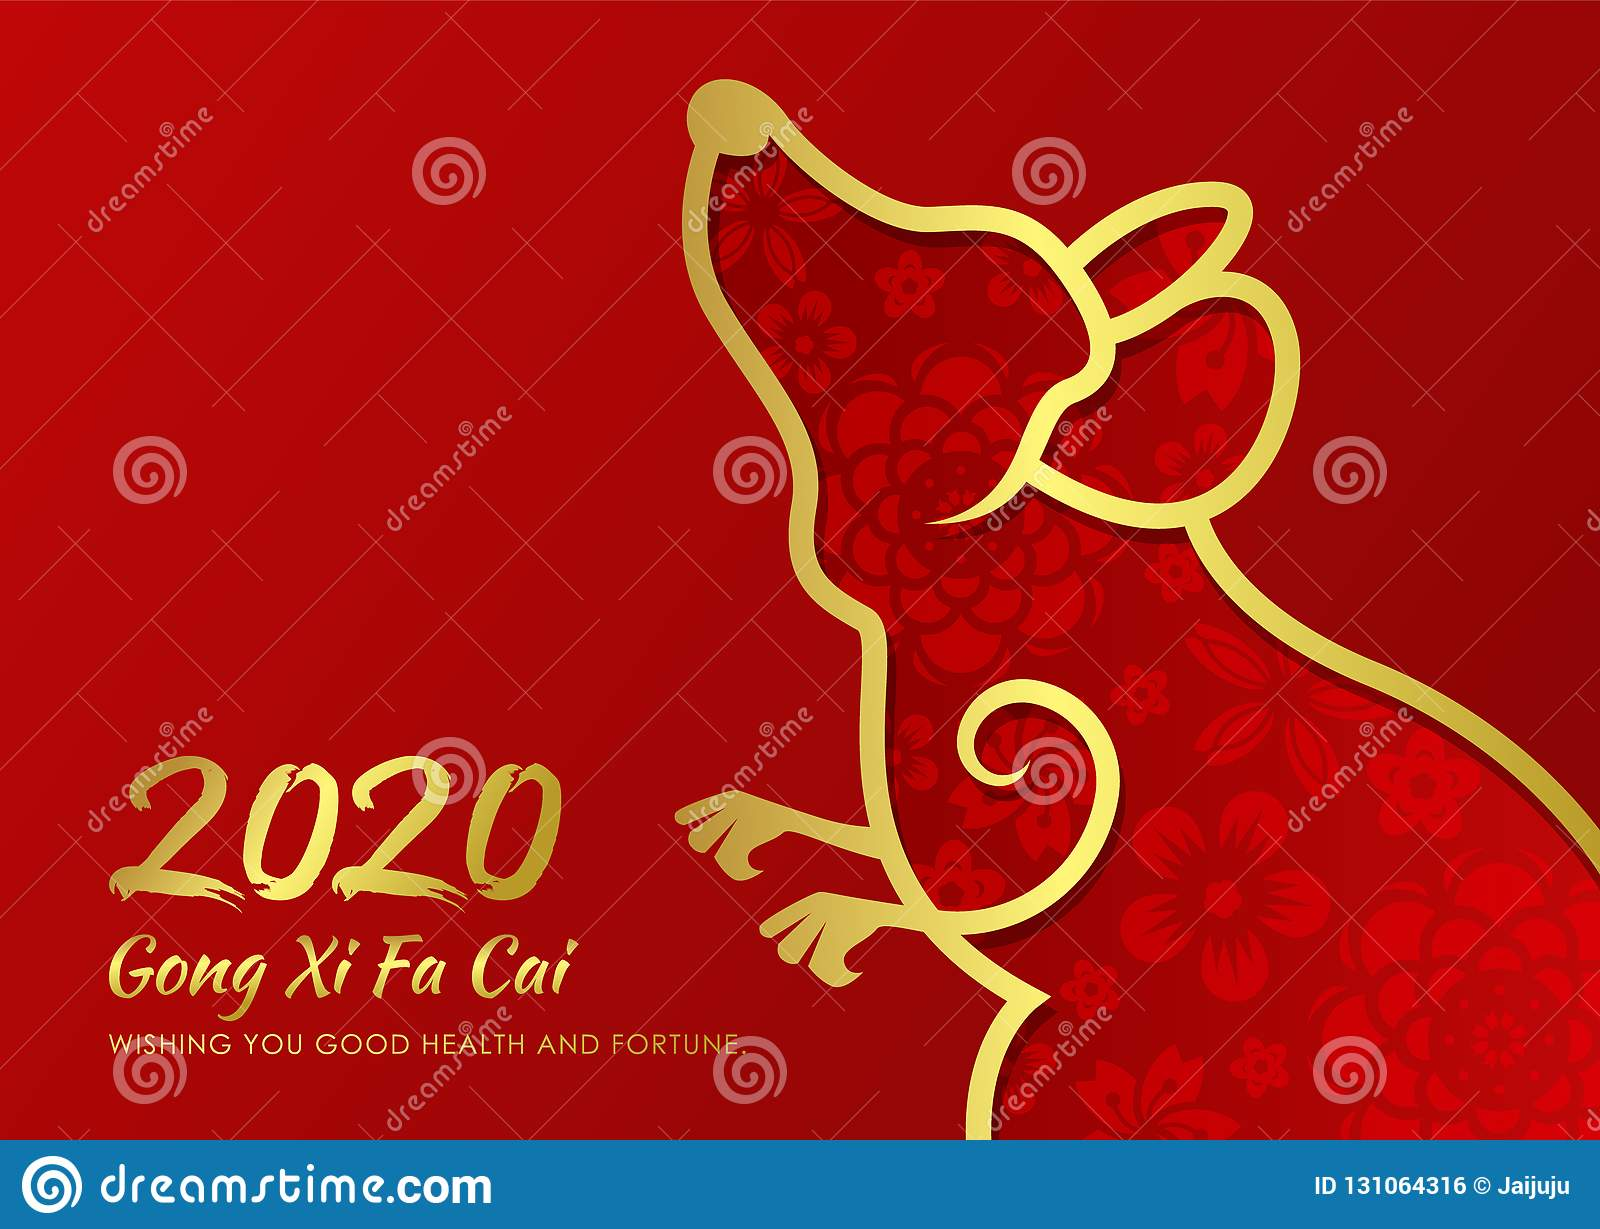 Chinese New Years 2020 Chinese New Year 2020 Card With Abstract Gold Border Line Rat